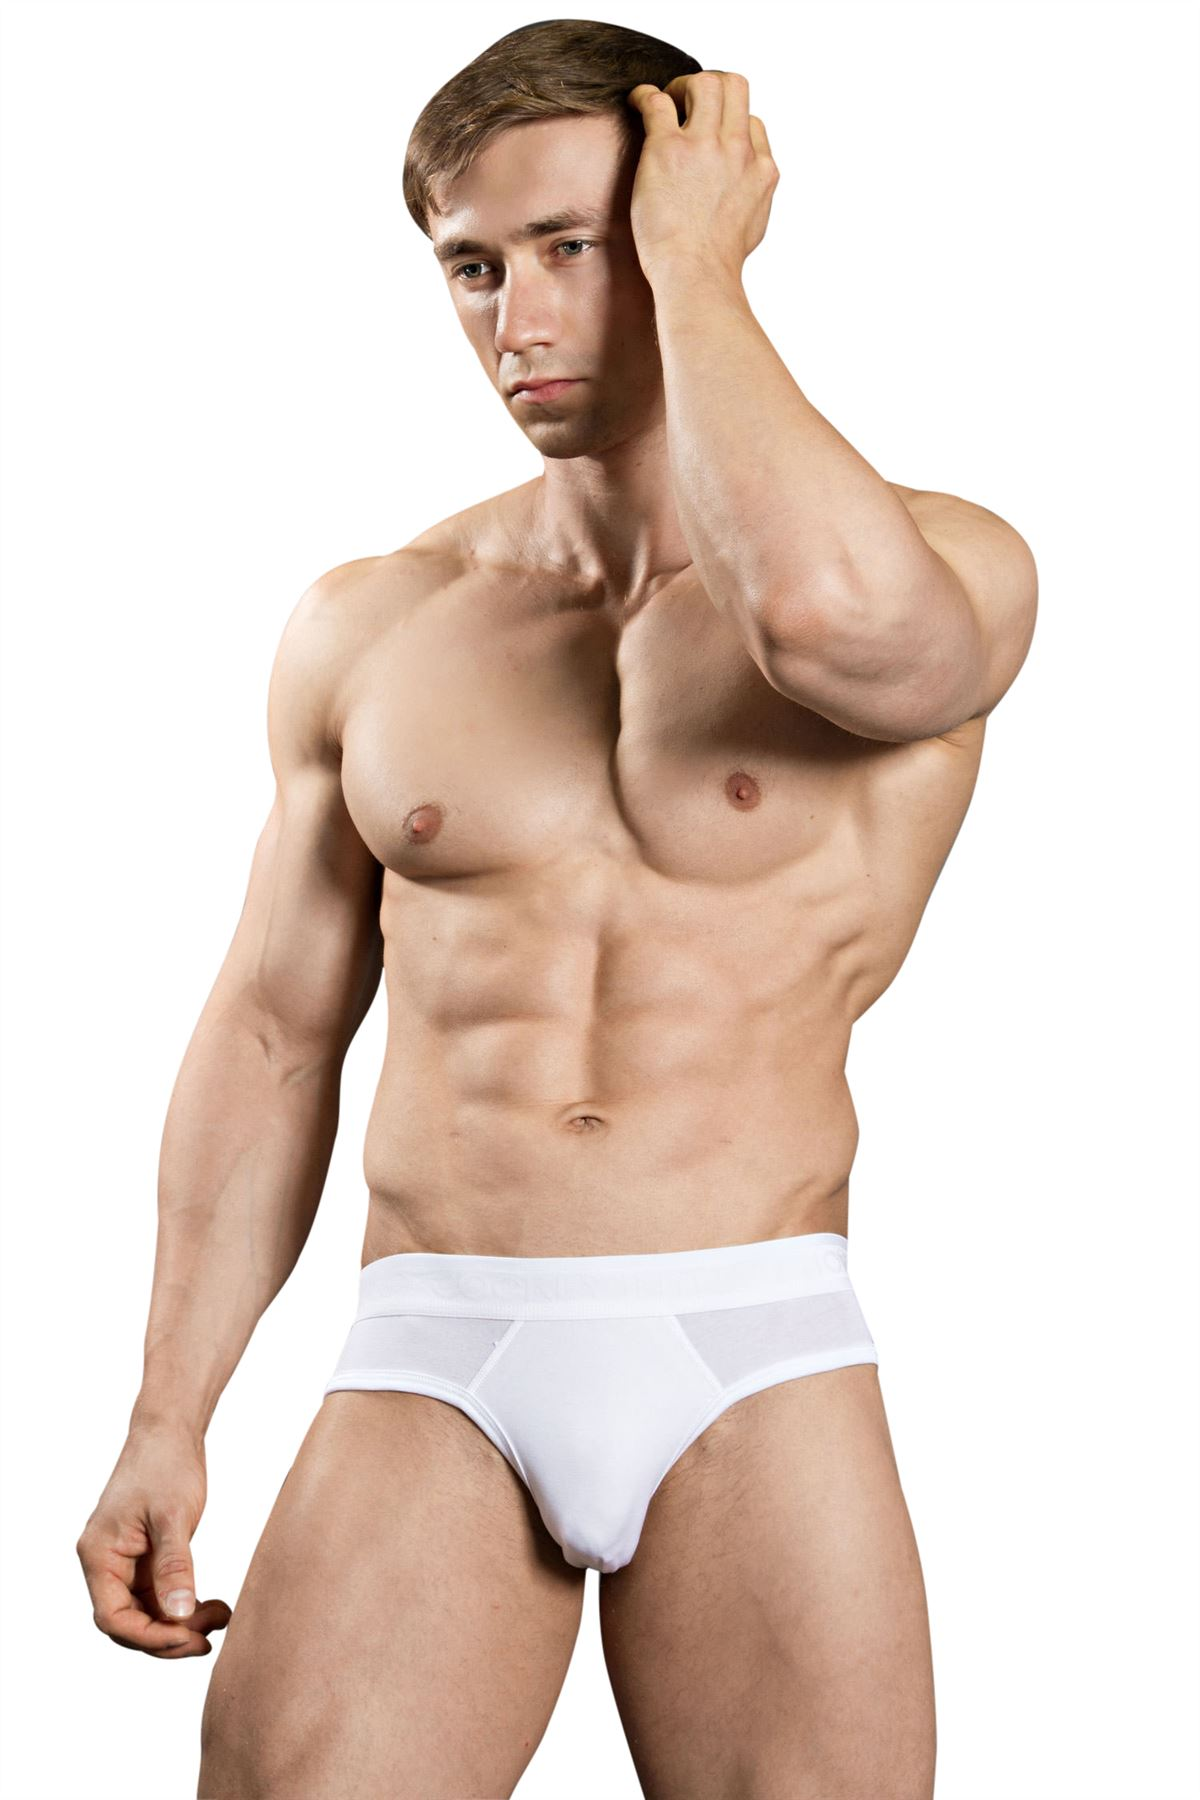 PRODUCT INFORMATION: Suggested retail price: $ Line Name: Cotton Available Sizes: S->XL As an exclusive line created by Jockey to be sold in Walmart stores, Life Underwear has cemented itself in the market as a popular, cheap underwear option for guys looking to stock up.